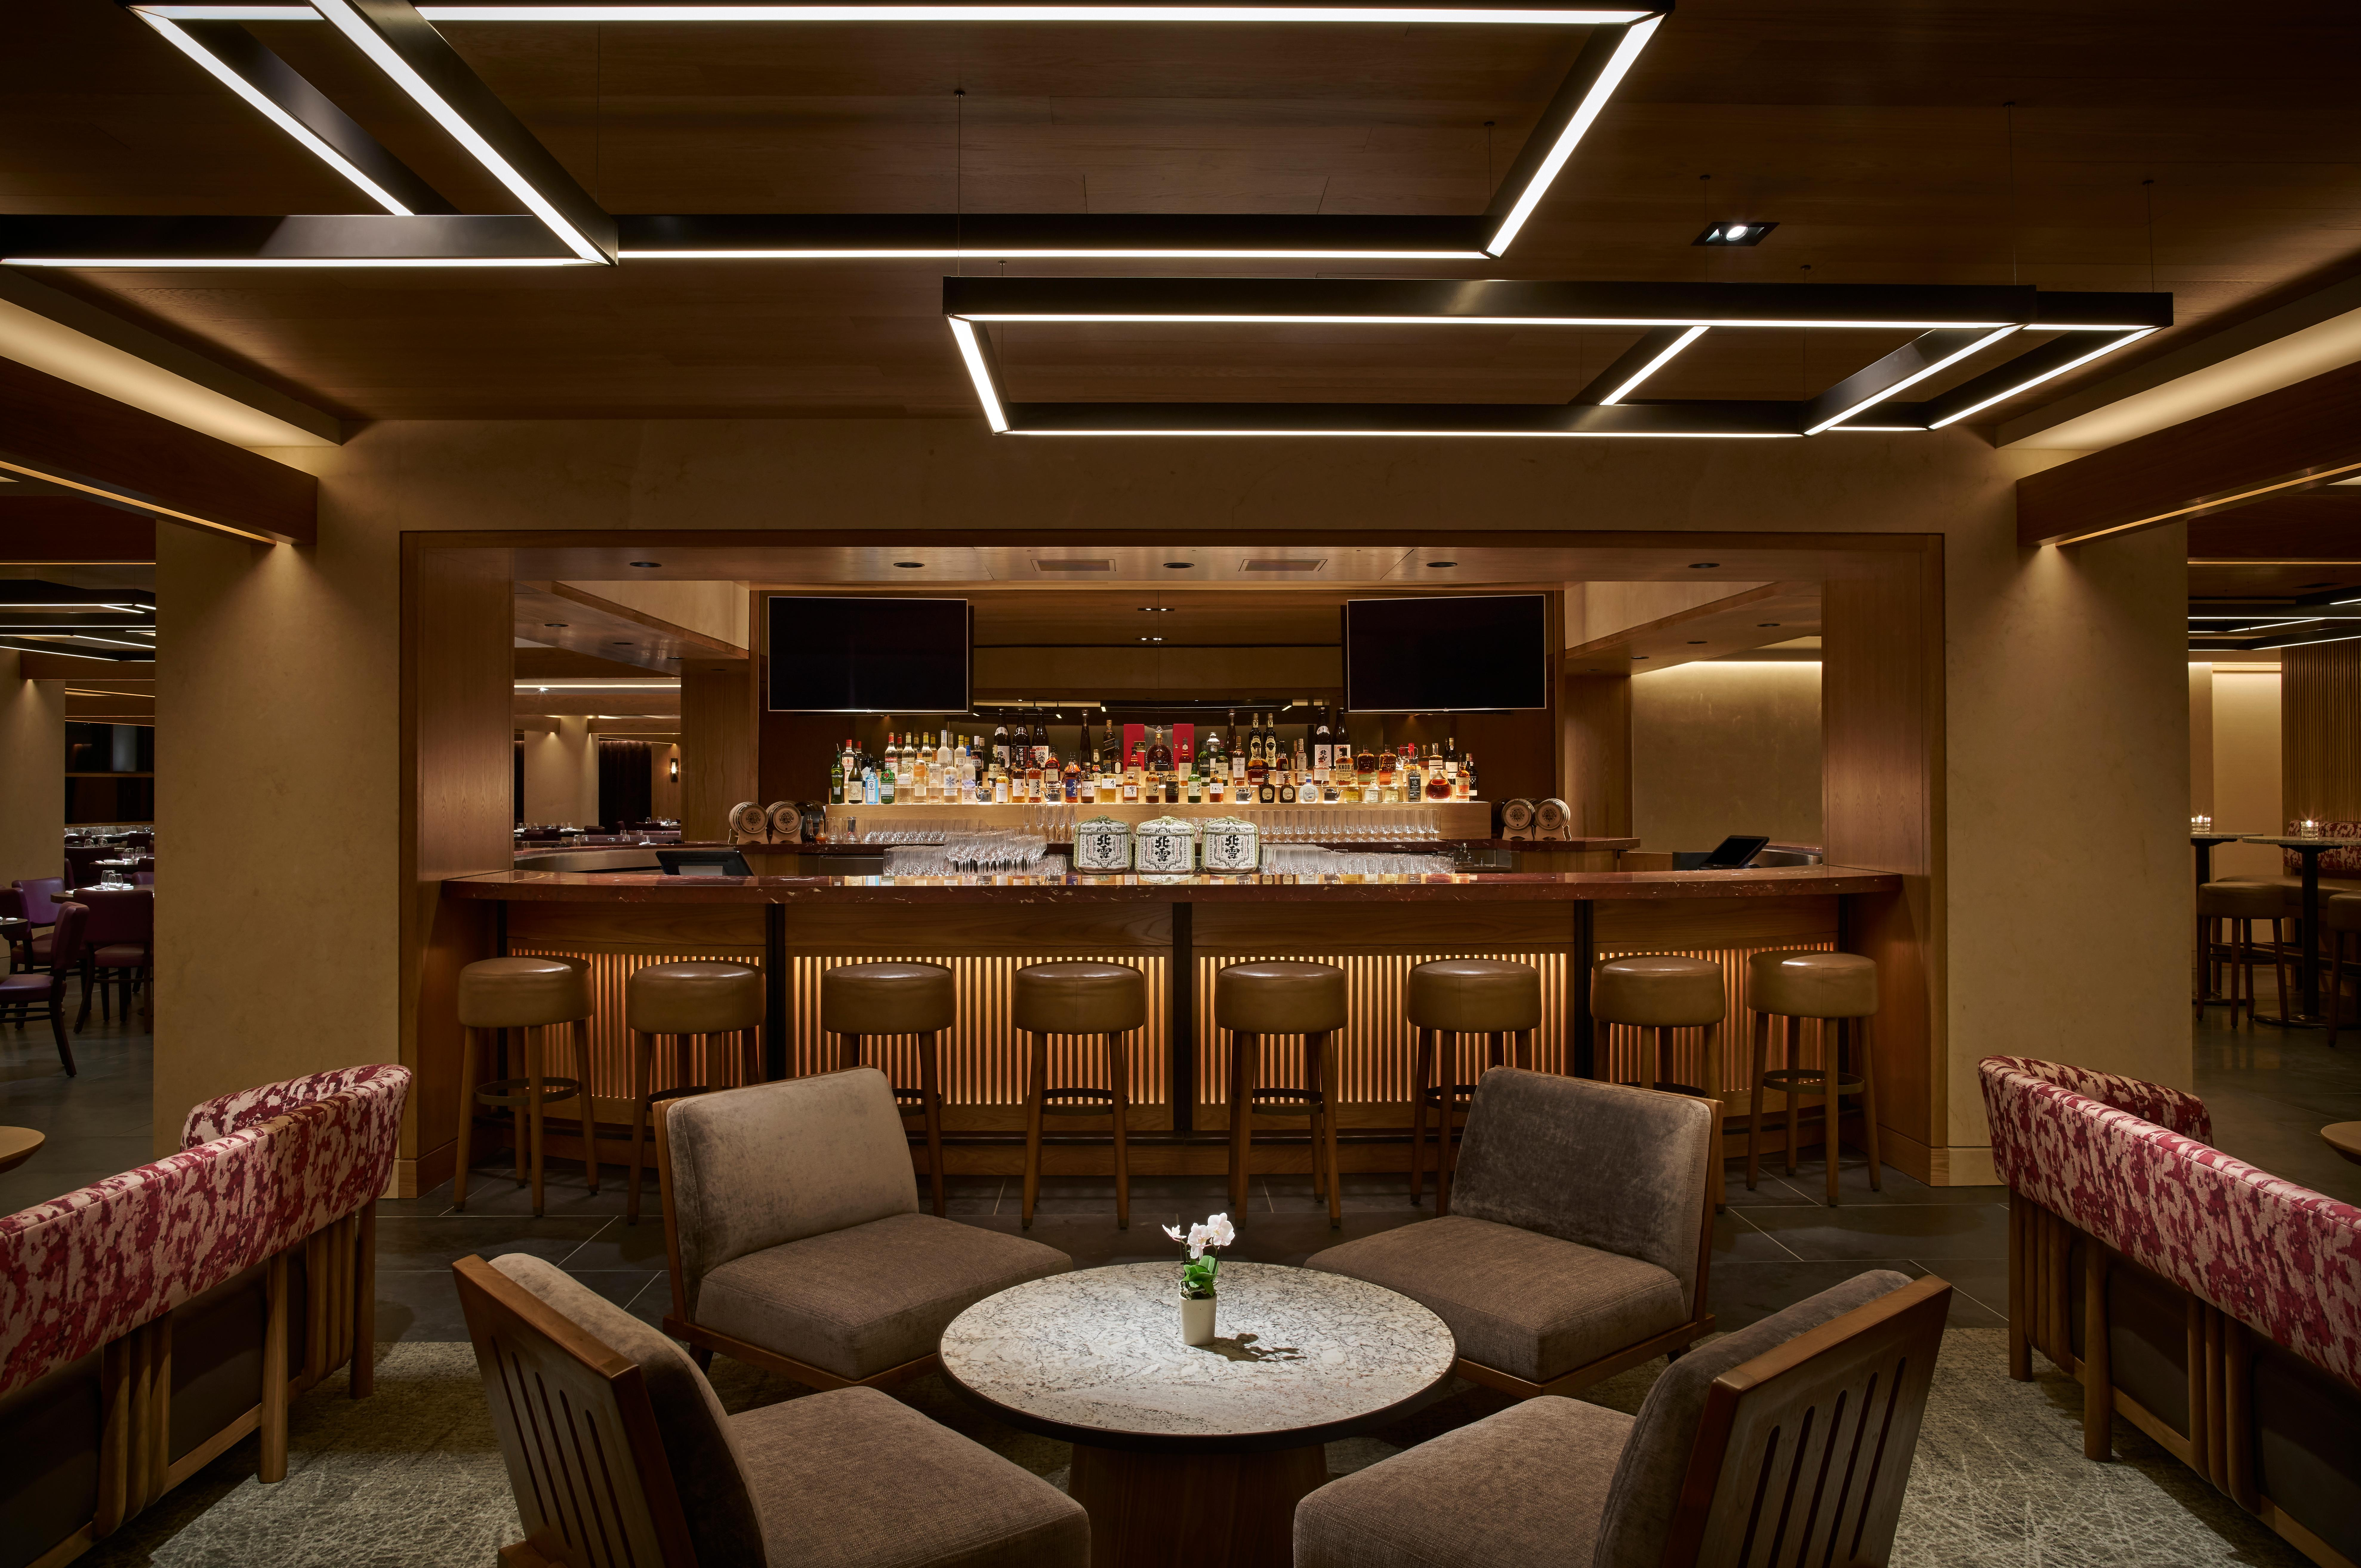 Nobu Washington DC Bar & Lounge (Photo credit: Greg Powers)